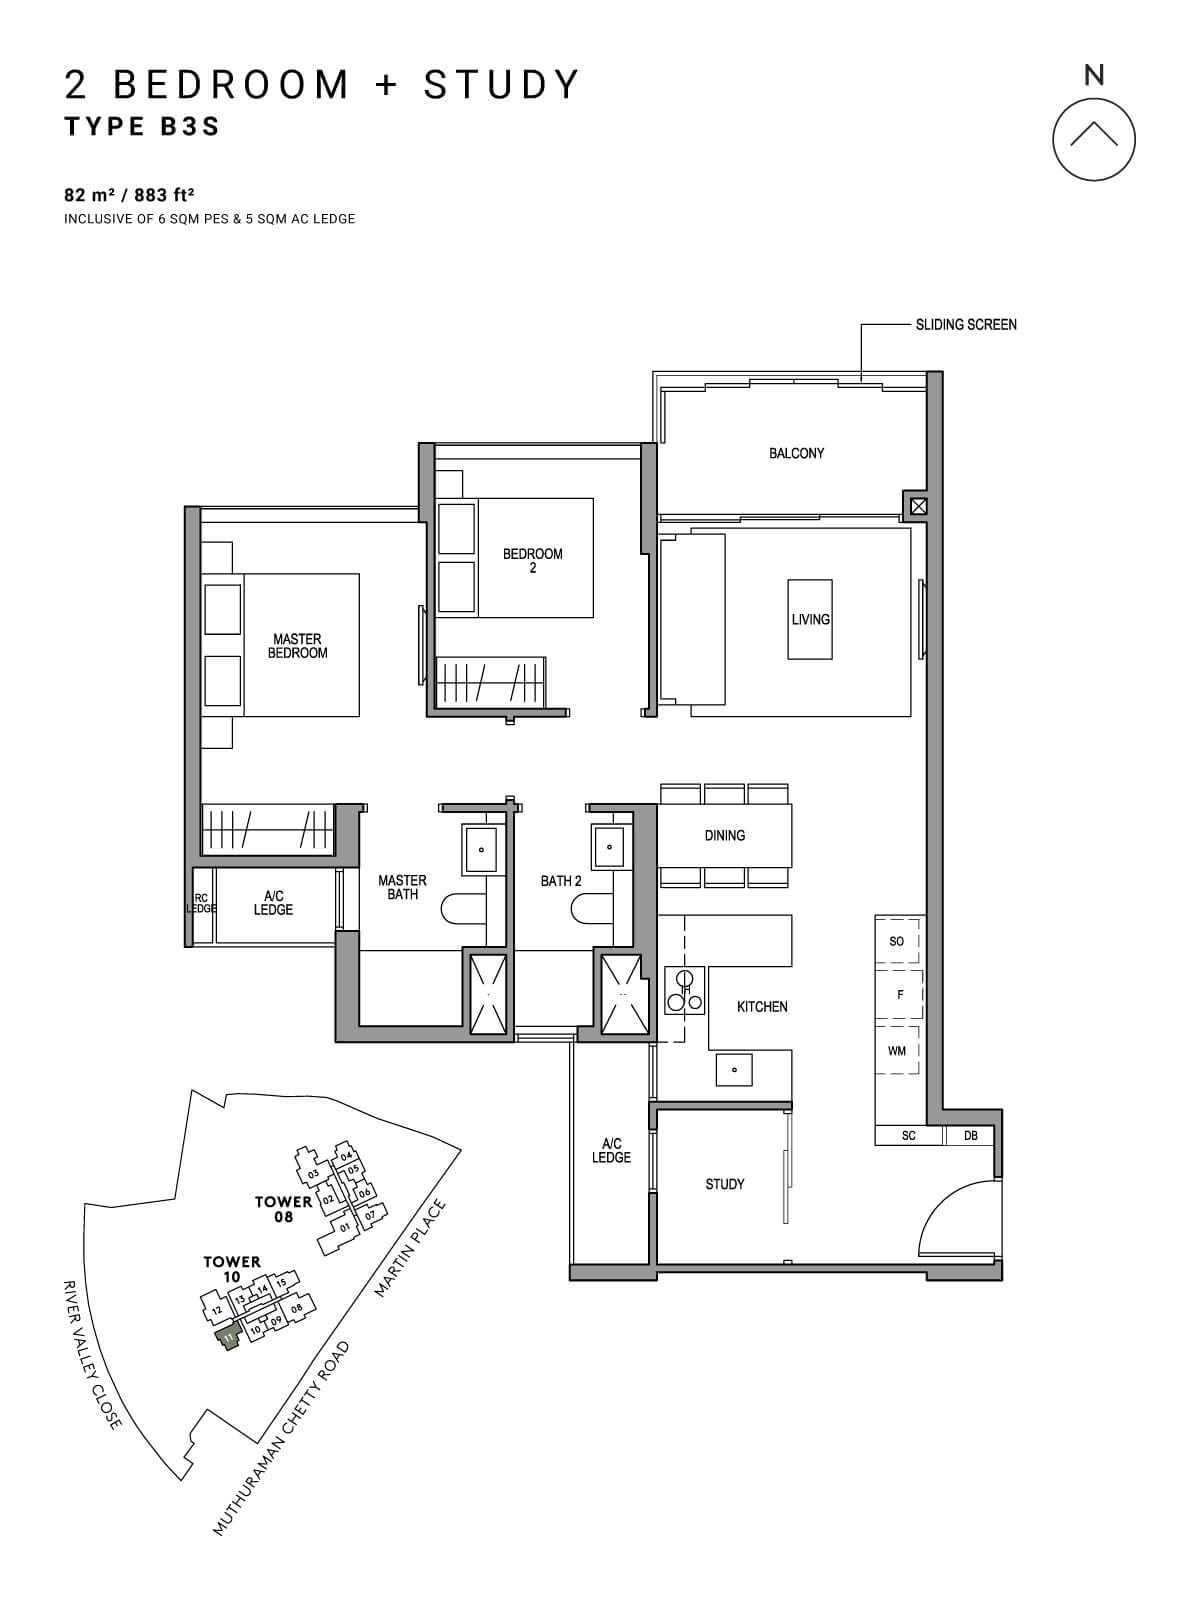 Martin Modern Floor Plan 2 Bedroom + Study Type B3S